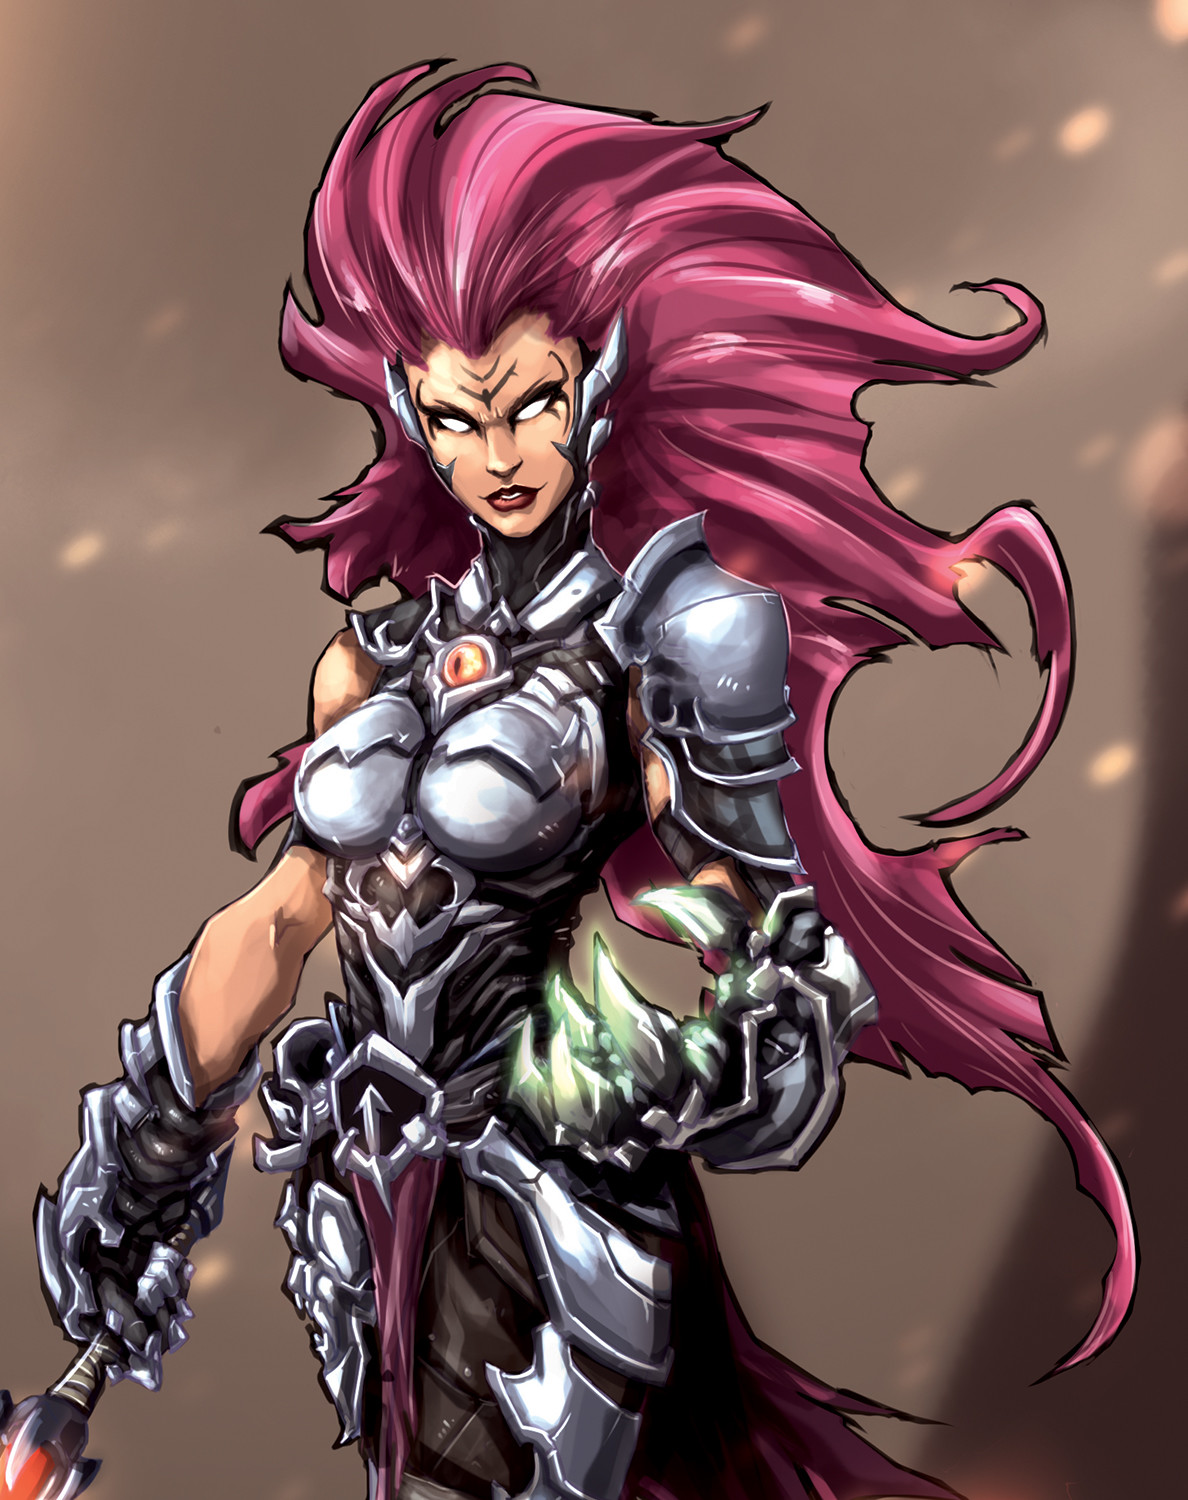 Artstation Darksiders 3 Fury Paul Tirol